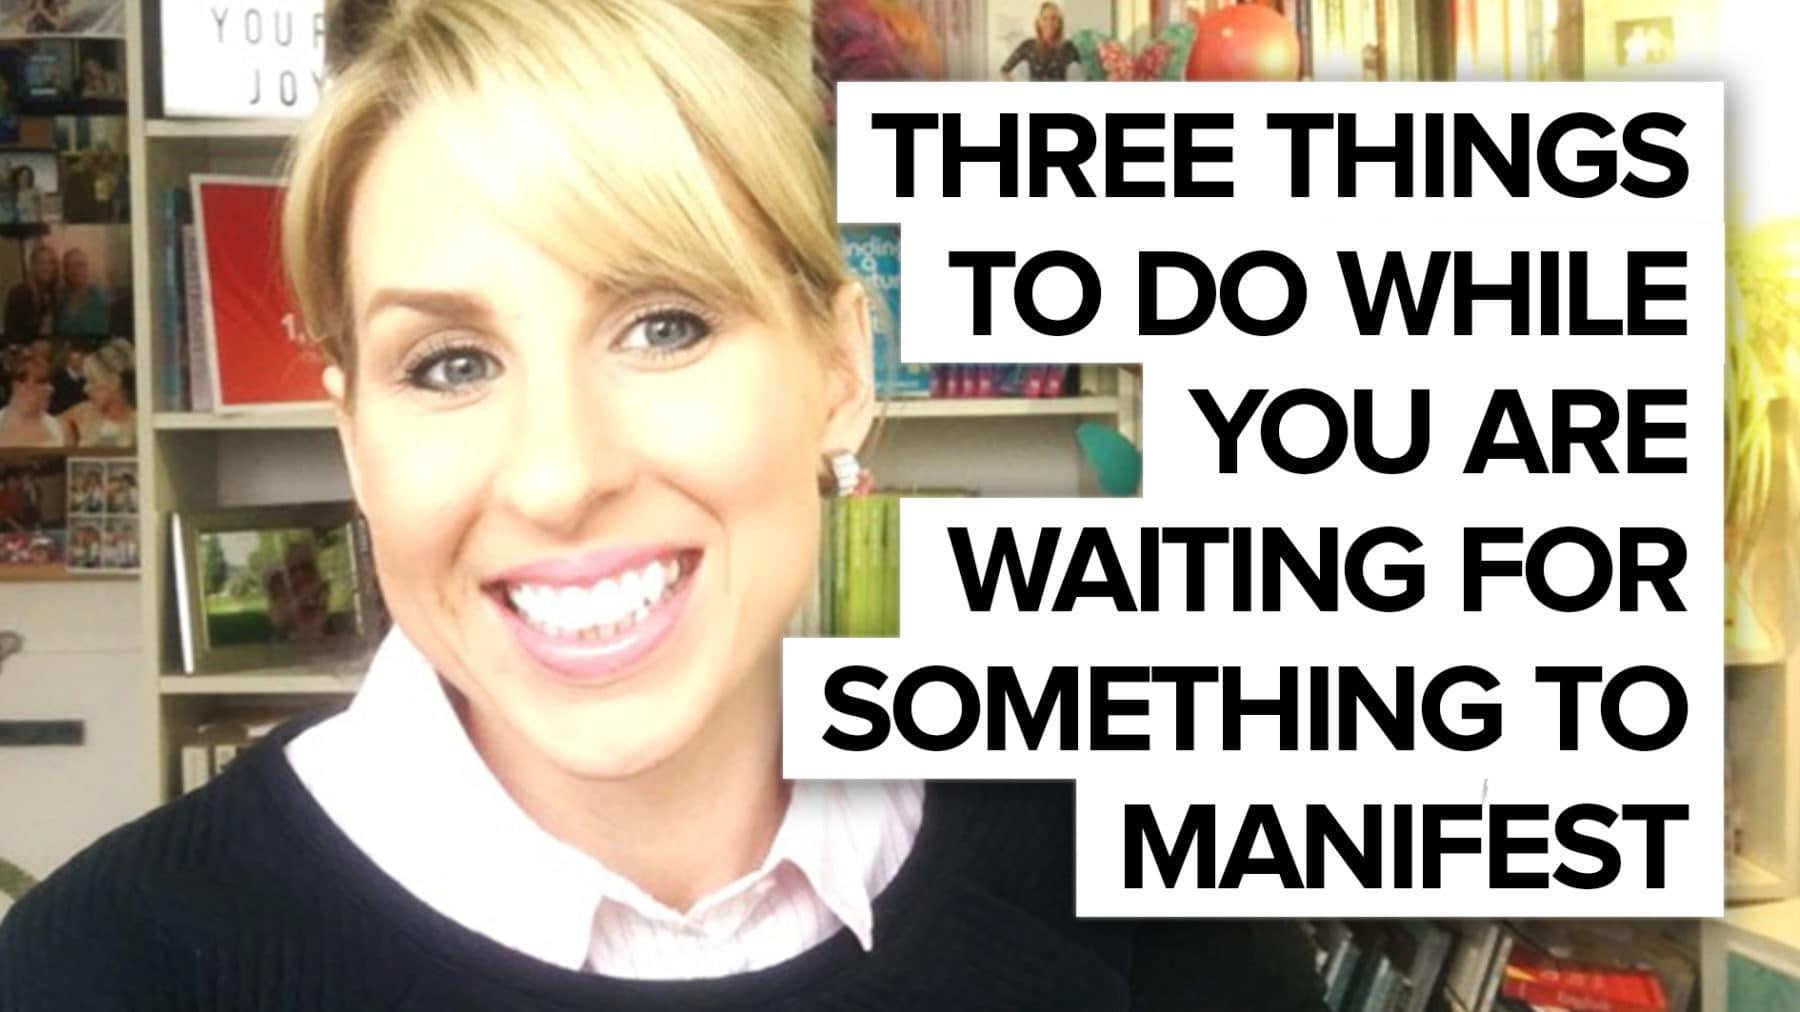 3 things to do when waiting for something to manifest